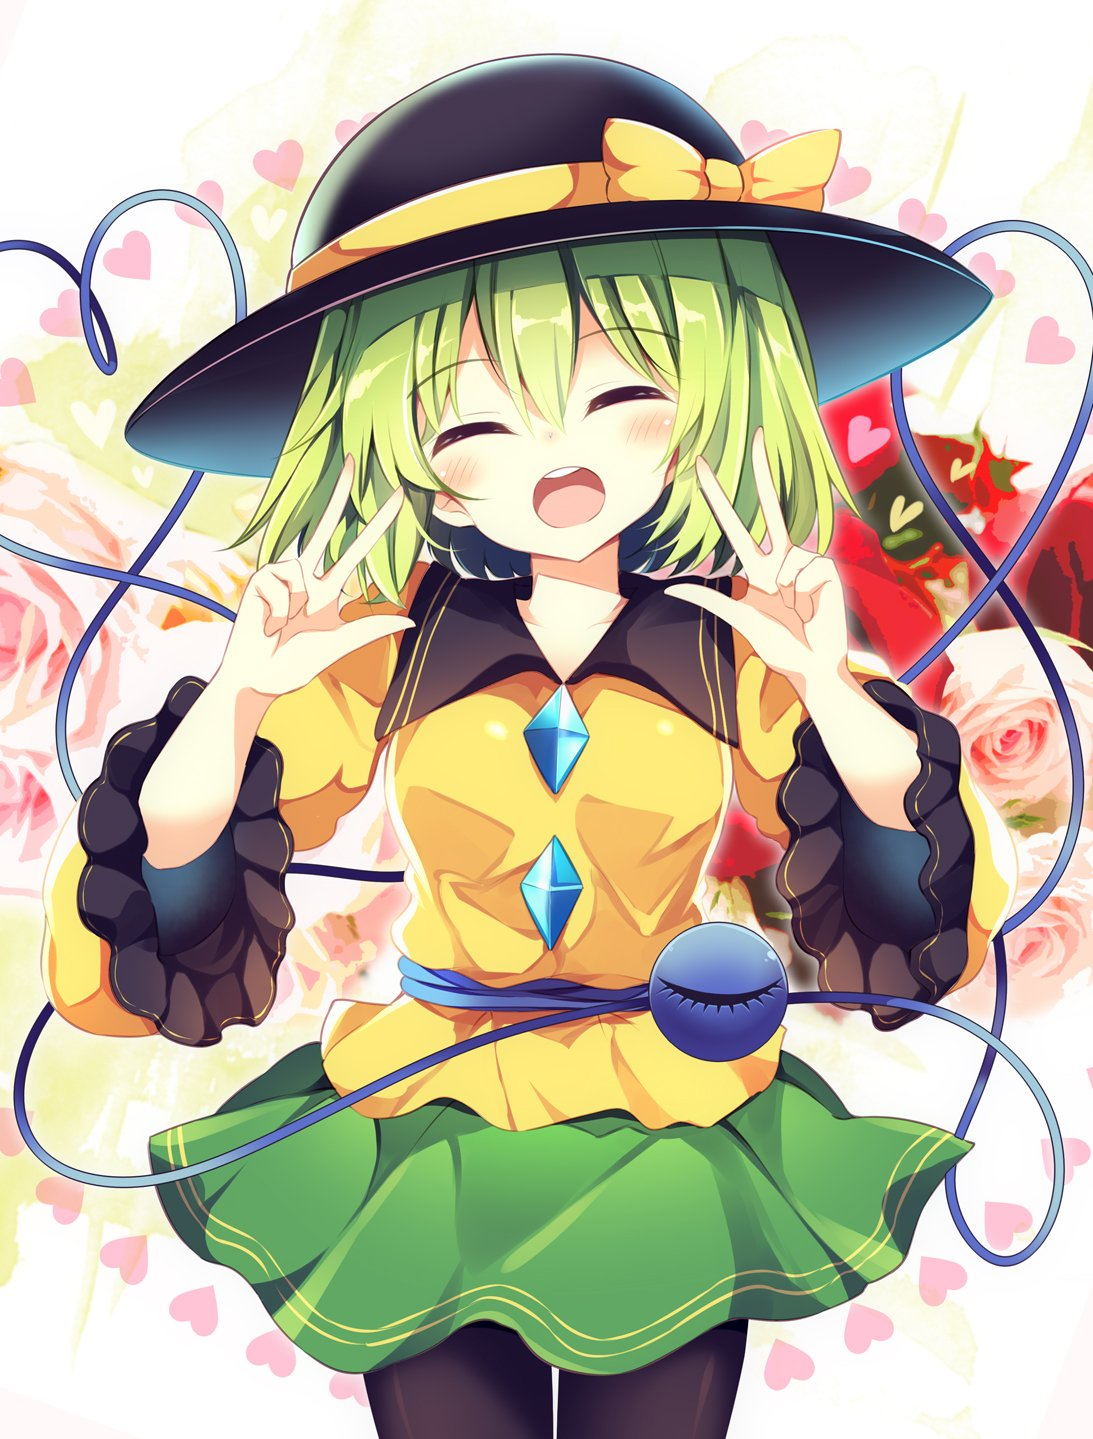 1girl :o ^_^ black_headwear black_legwear blush bow breasts closed_eyes closed_eyes commentary_request cowboy_shot double_w flower frilled_sleeves frills green_hair green_skirt hands_up hat hat_bow heart heart_of_string highres koishi_day komeiji_koishi long_sleeves looking_at_viewer maturiuta_sorato medium_breasts miniskirt open_mouth pantyhose pink_flower pink_rose red_flower red_rose rose shirt short_hair skirt solo standing third_eye touhou w white_background wide_sleeves yellow_bow yellow_shirt